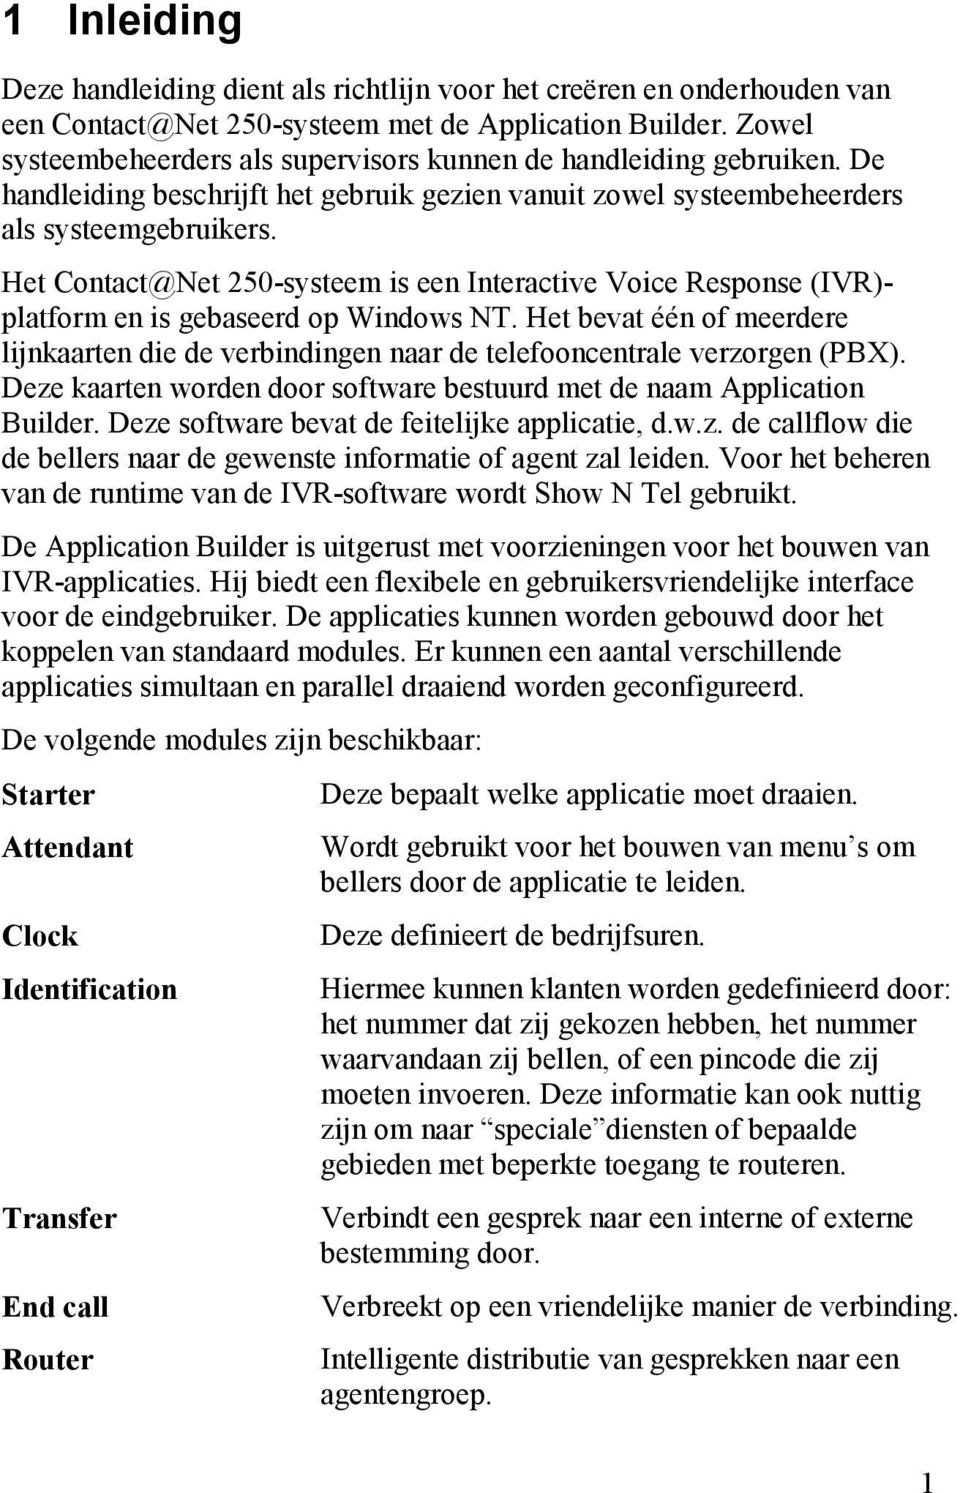 Het Contact@Net 250-systeem is een Interactive Voice Response (IVR)- platform en is gebaseerd op Windows NT.